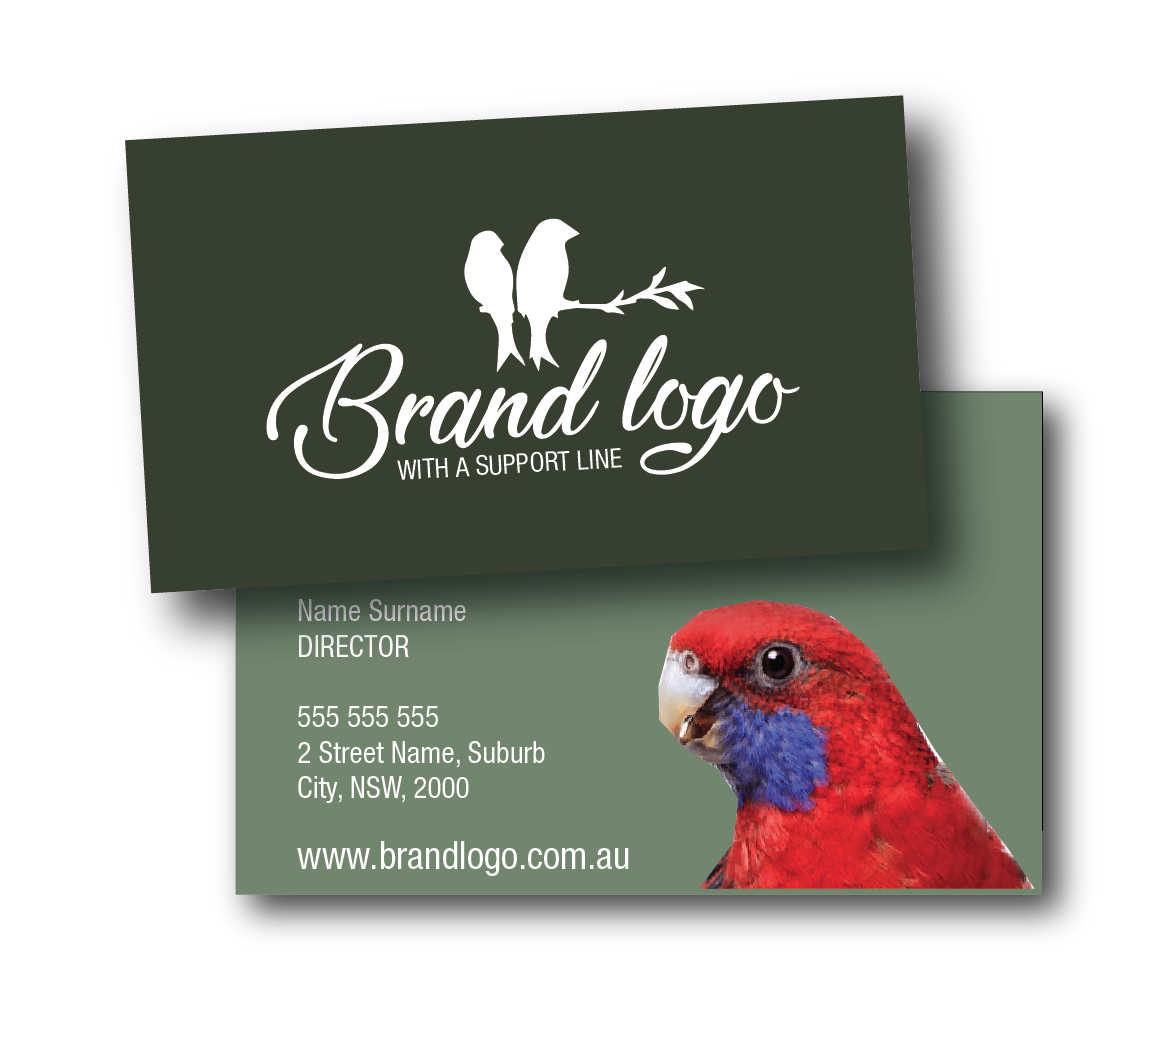 canberra business cards layout design